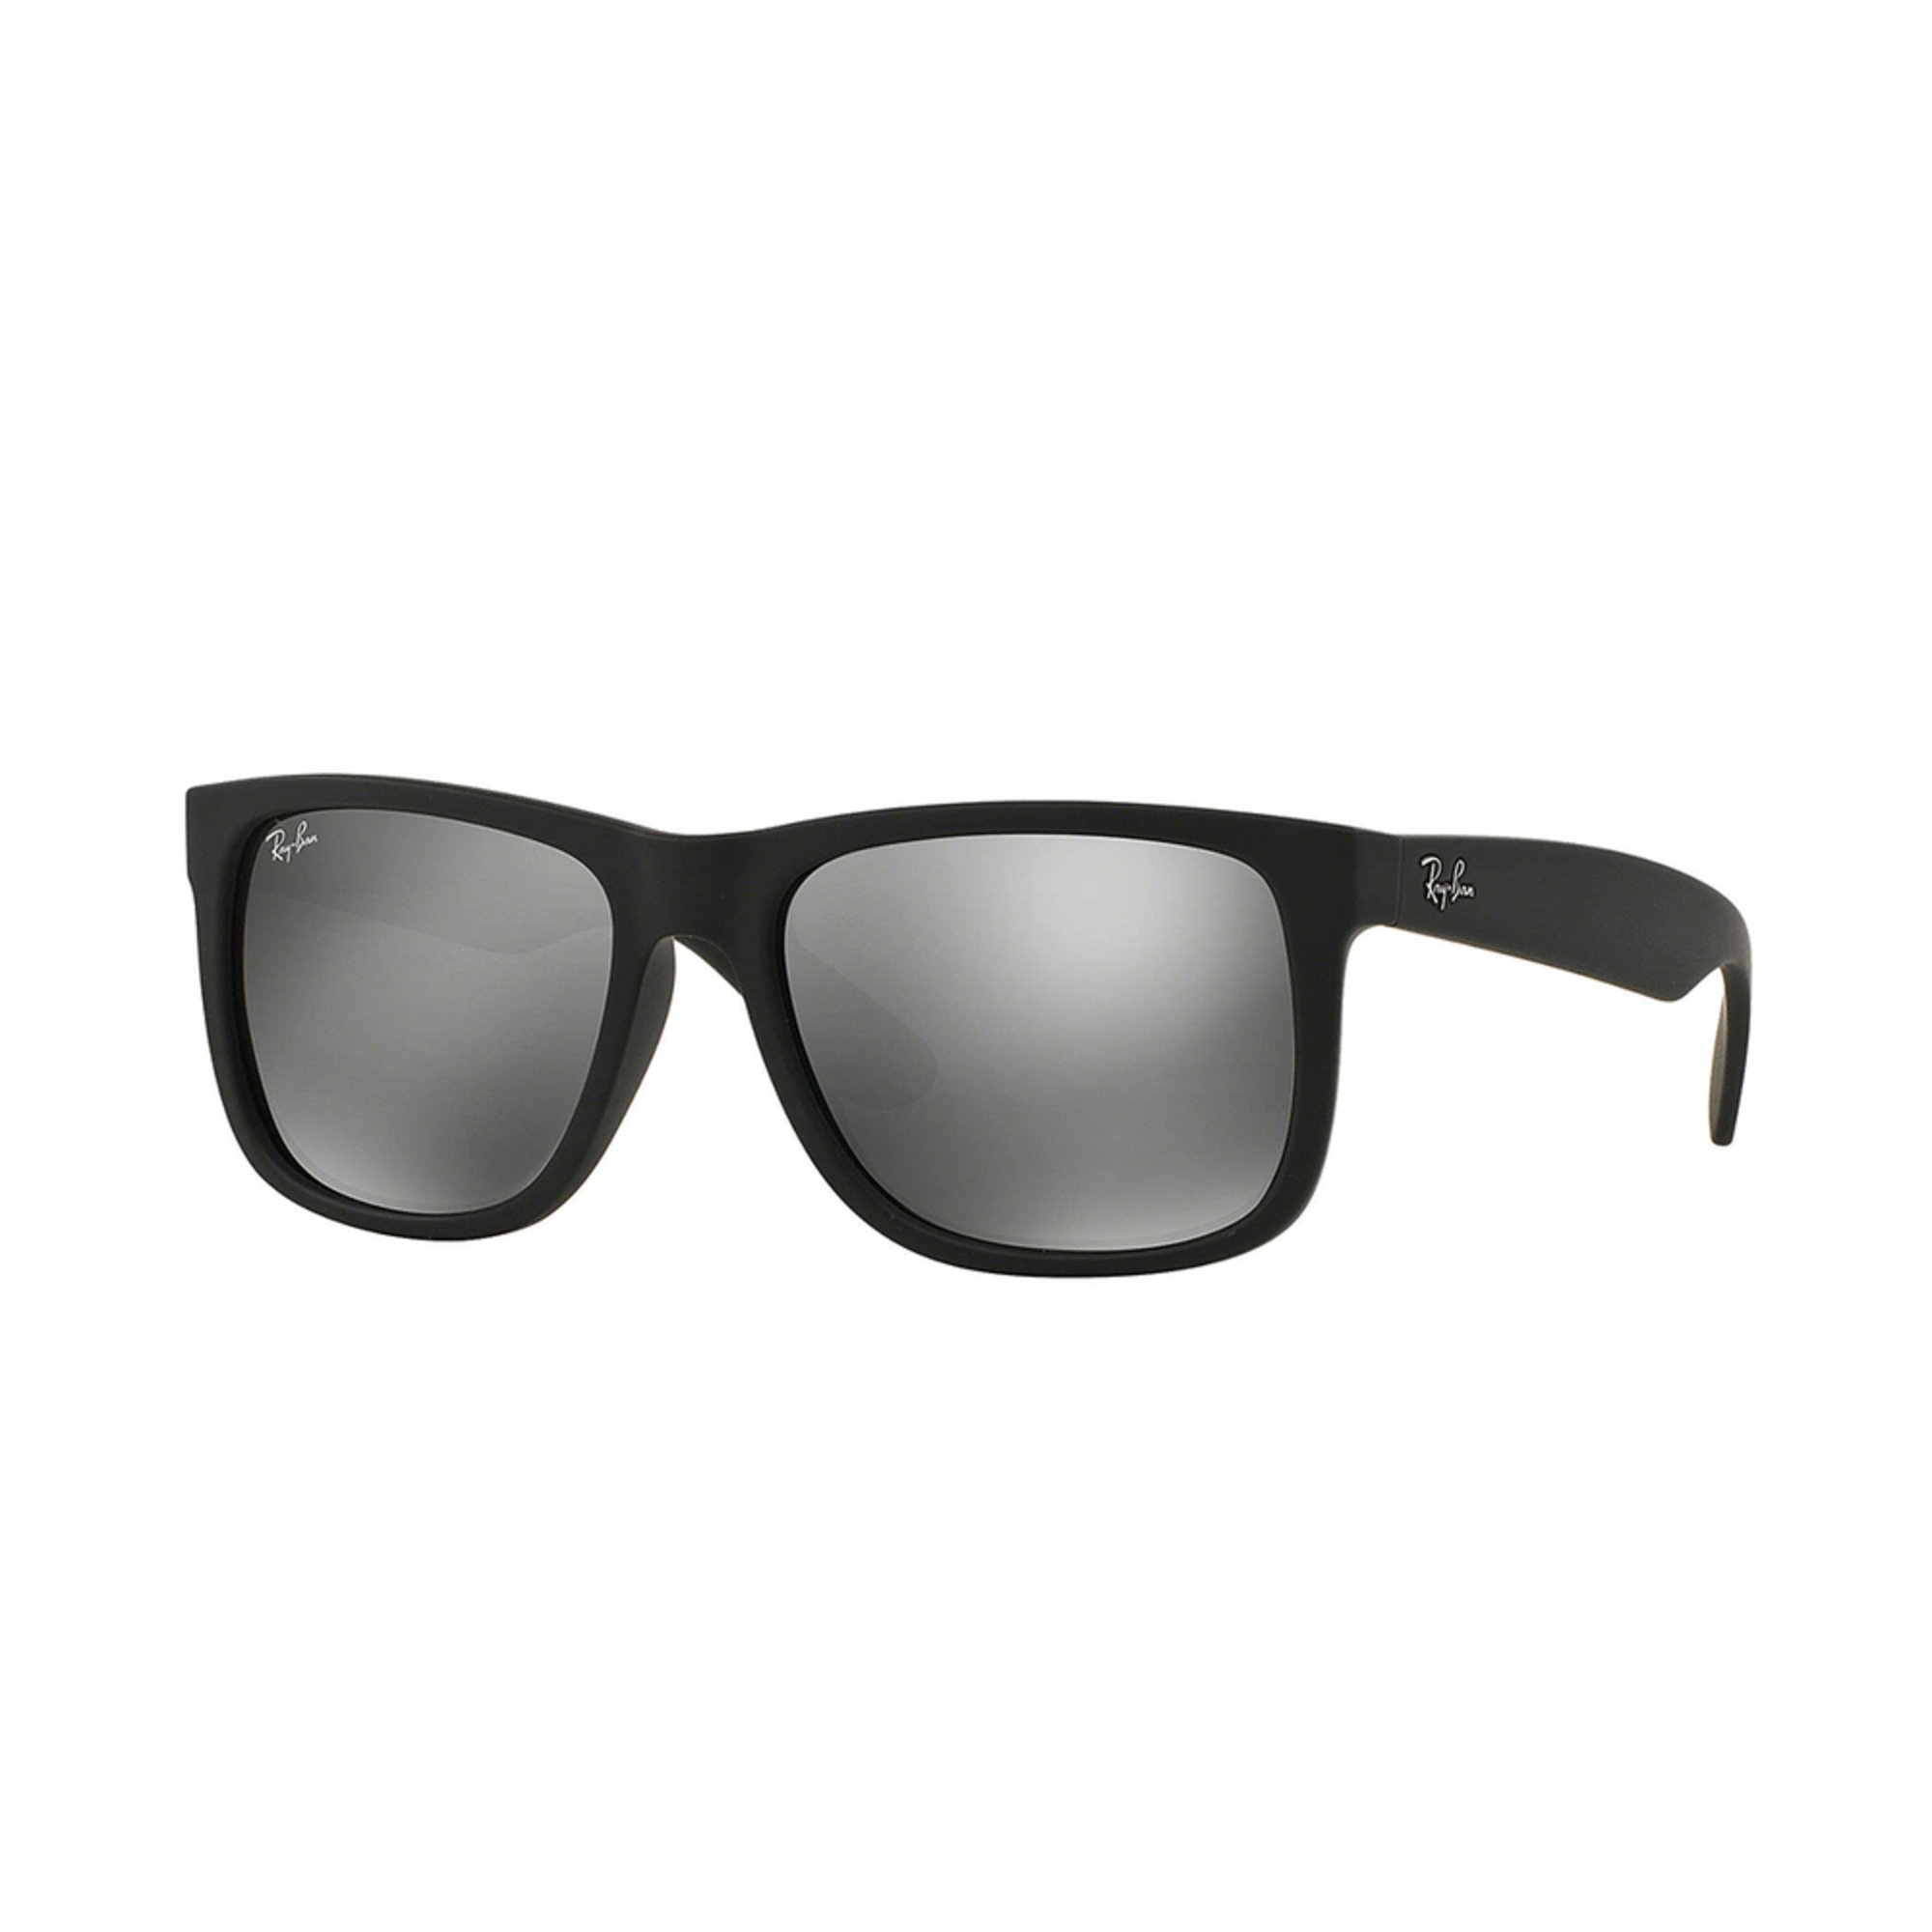 137405dce0 Ray-Ban. Ray-Ban Unisex Justin RB4165 Black Polarized Gray Mirror Sunglasses  55mm